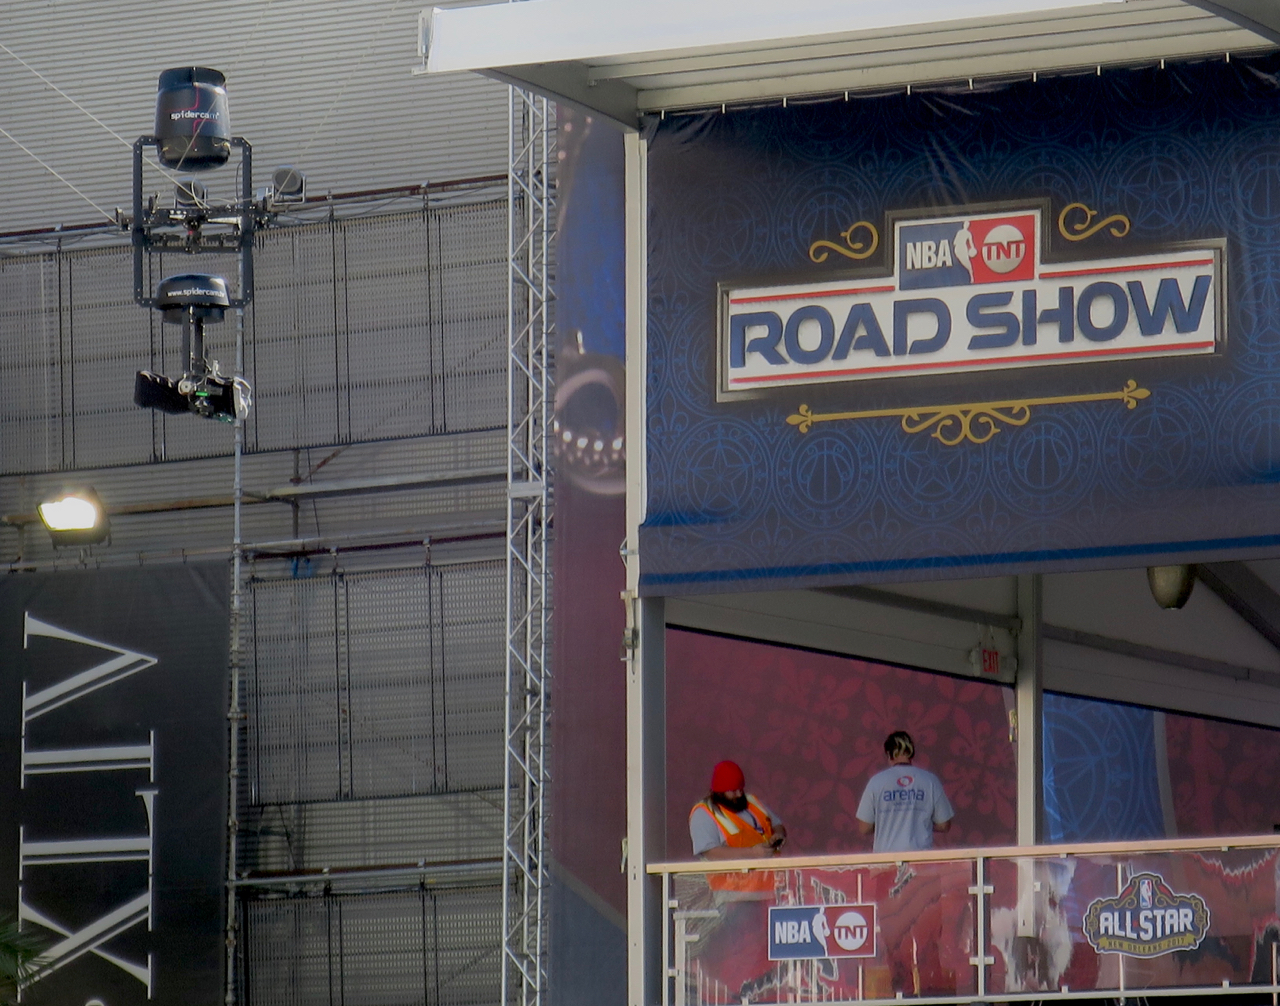 A point-to-point Spidercam is flying over the NBA on TNT Road Show.